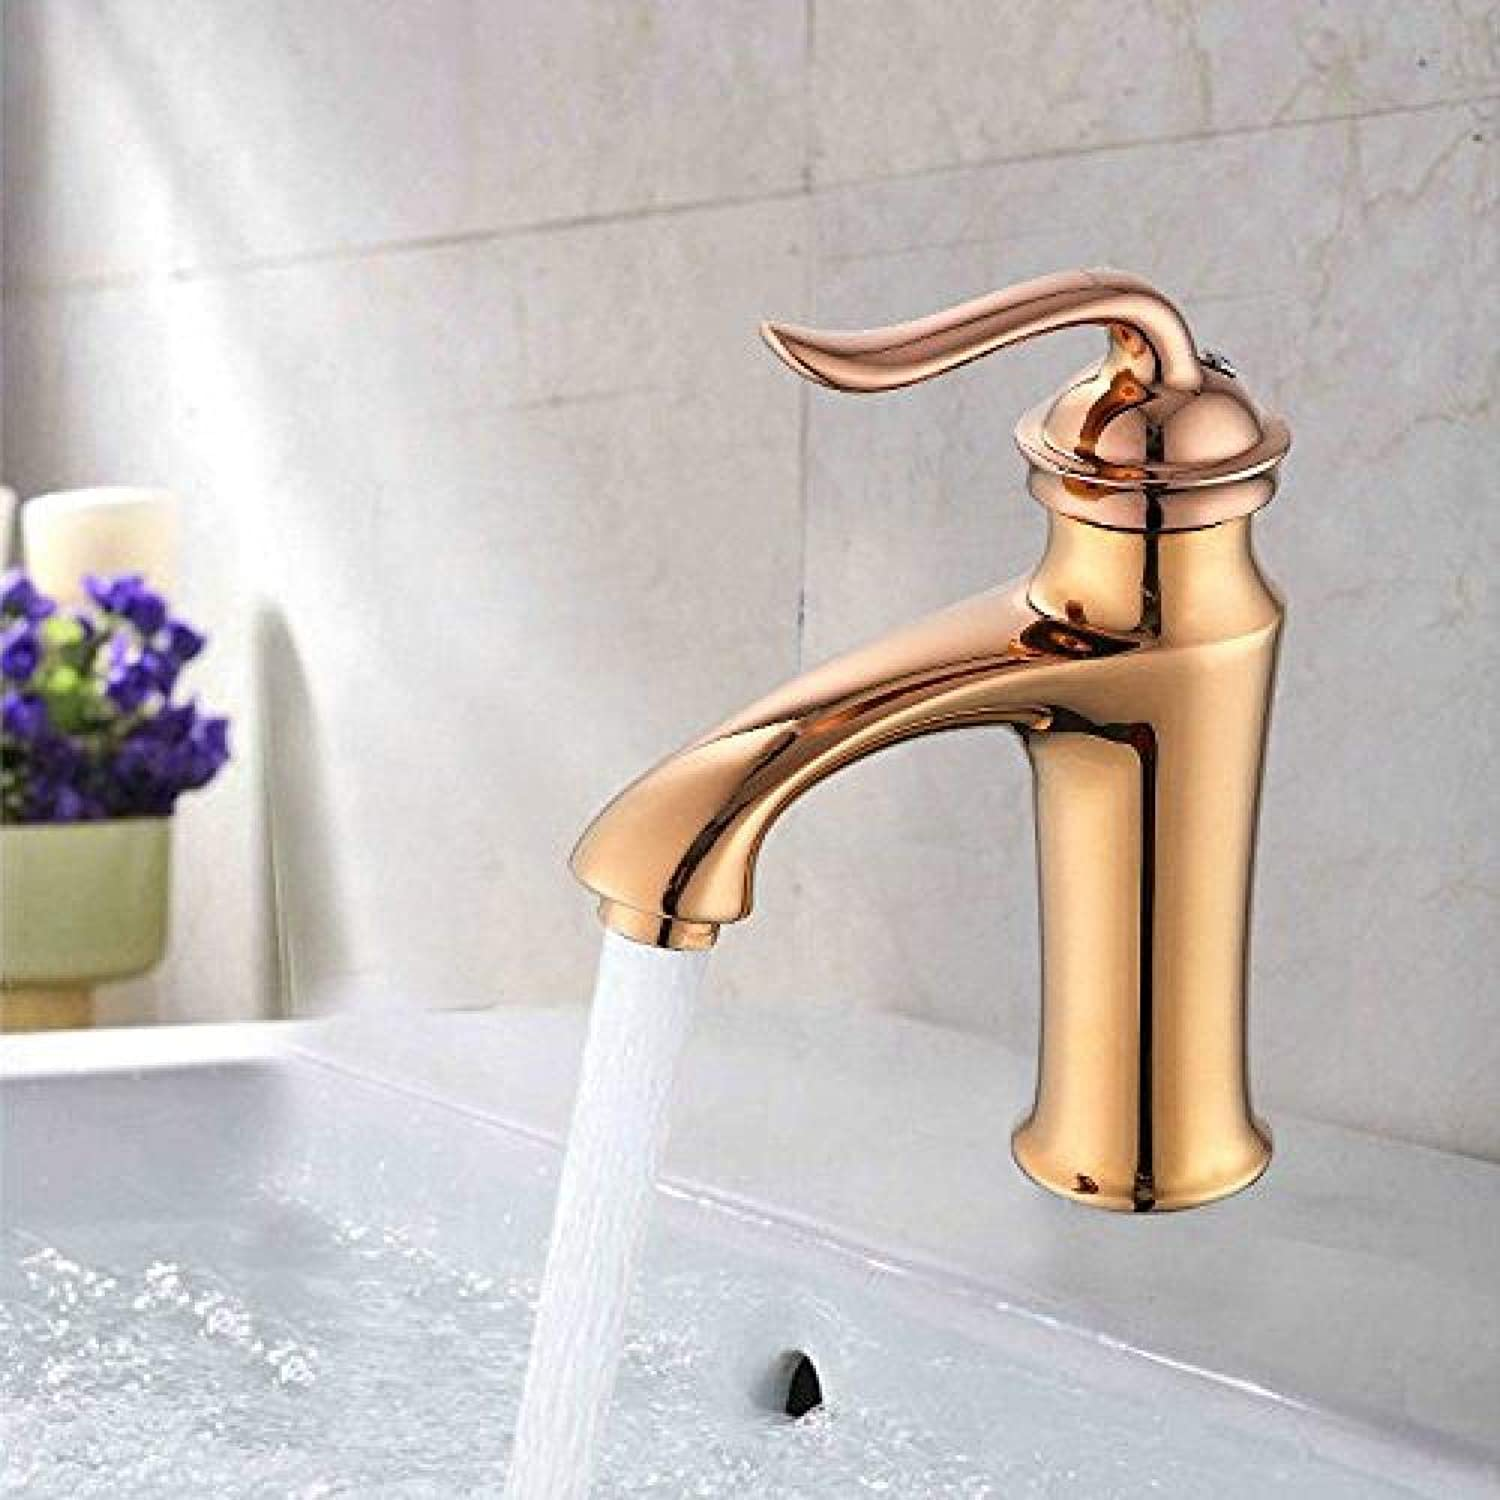 Honcx Faucet Taps Bathroom Sink Faucet Antique Wash Basin Above Counter Basin Faucet Copper Hot and Cold Water Glass Faucet Single Hole Single Handle